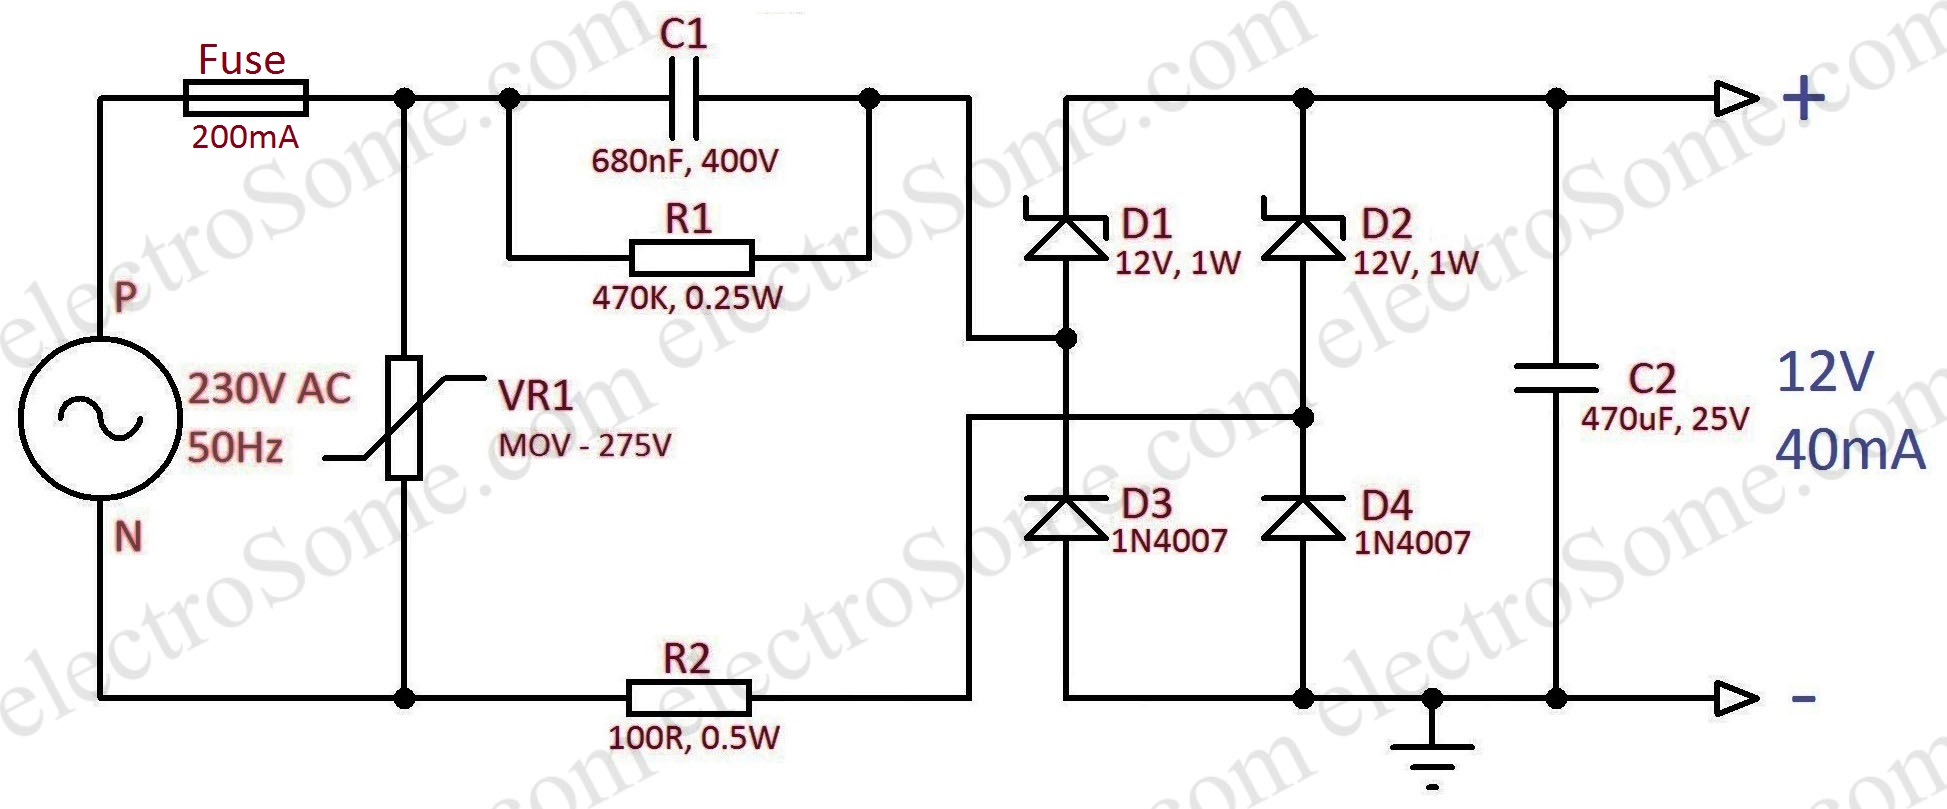 Transformerless Capacitor Power Supply Design Ac To Dc Converter Wiring Diagram Circuit 12v 40ma